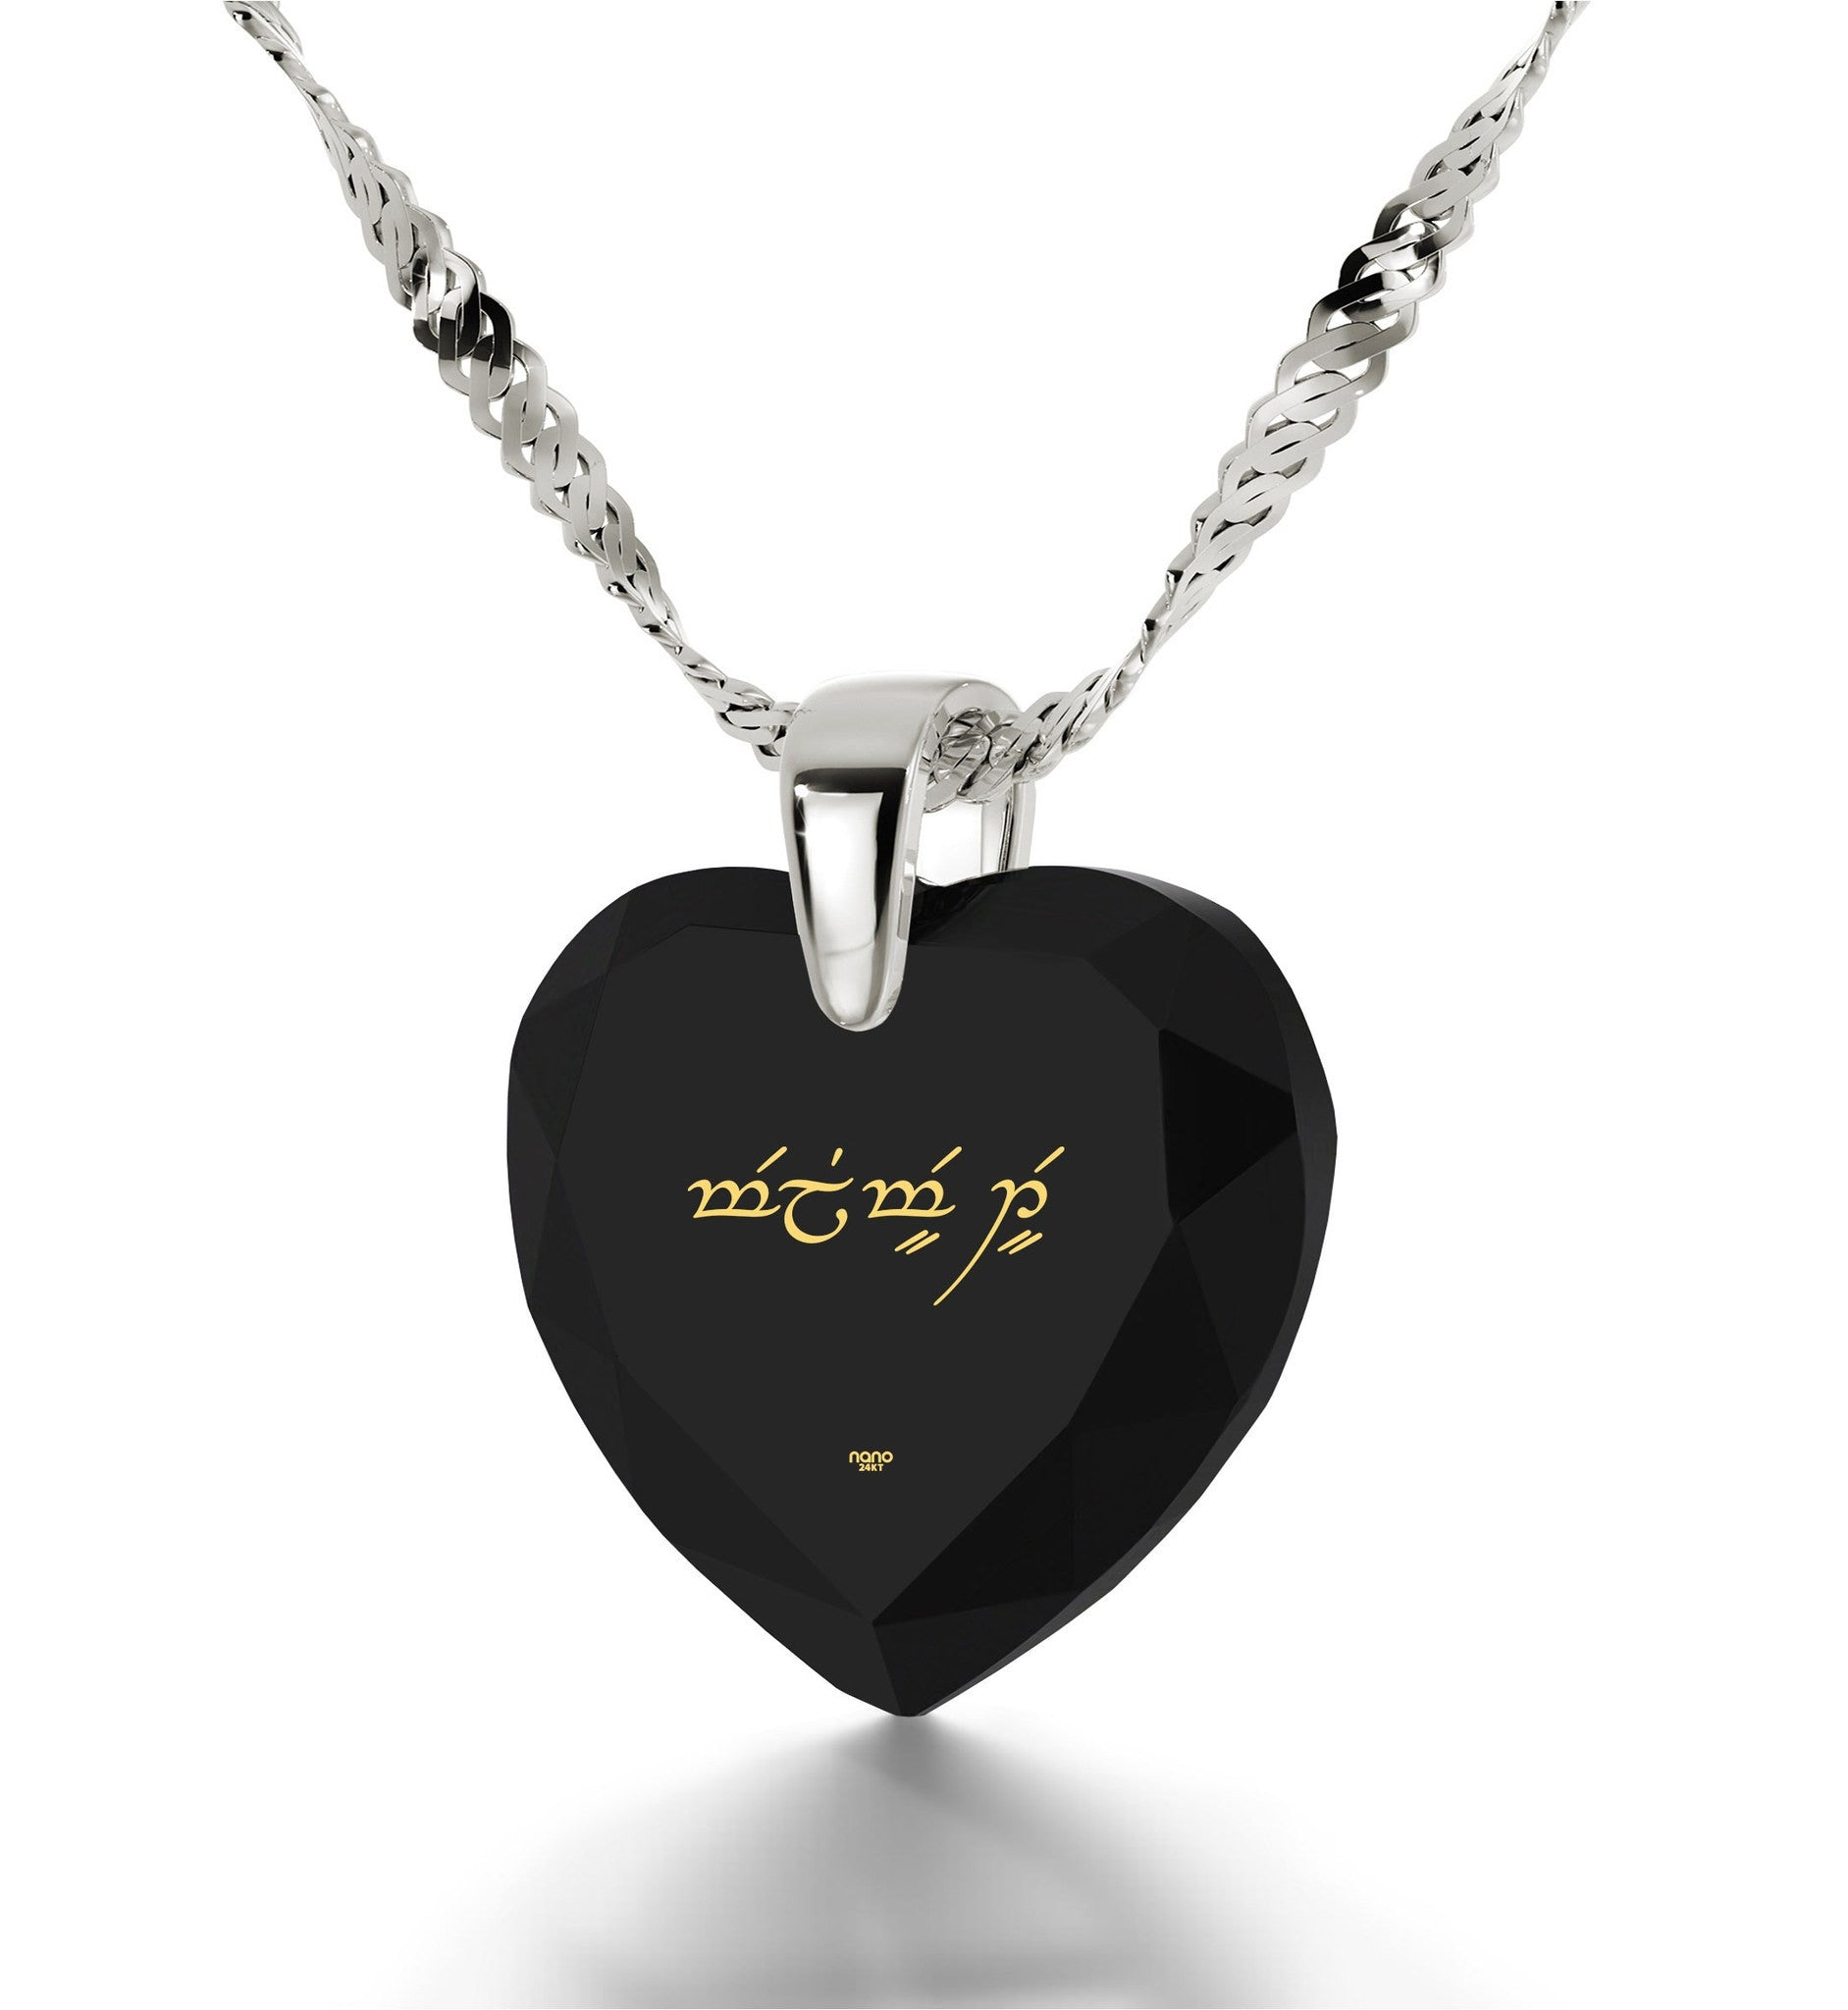 "Romantic Gifts for Her,""I Love You"" in Elvish, Valentines Day Idea, Black Jewelry"